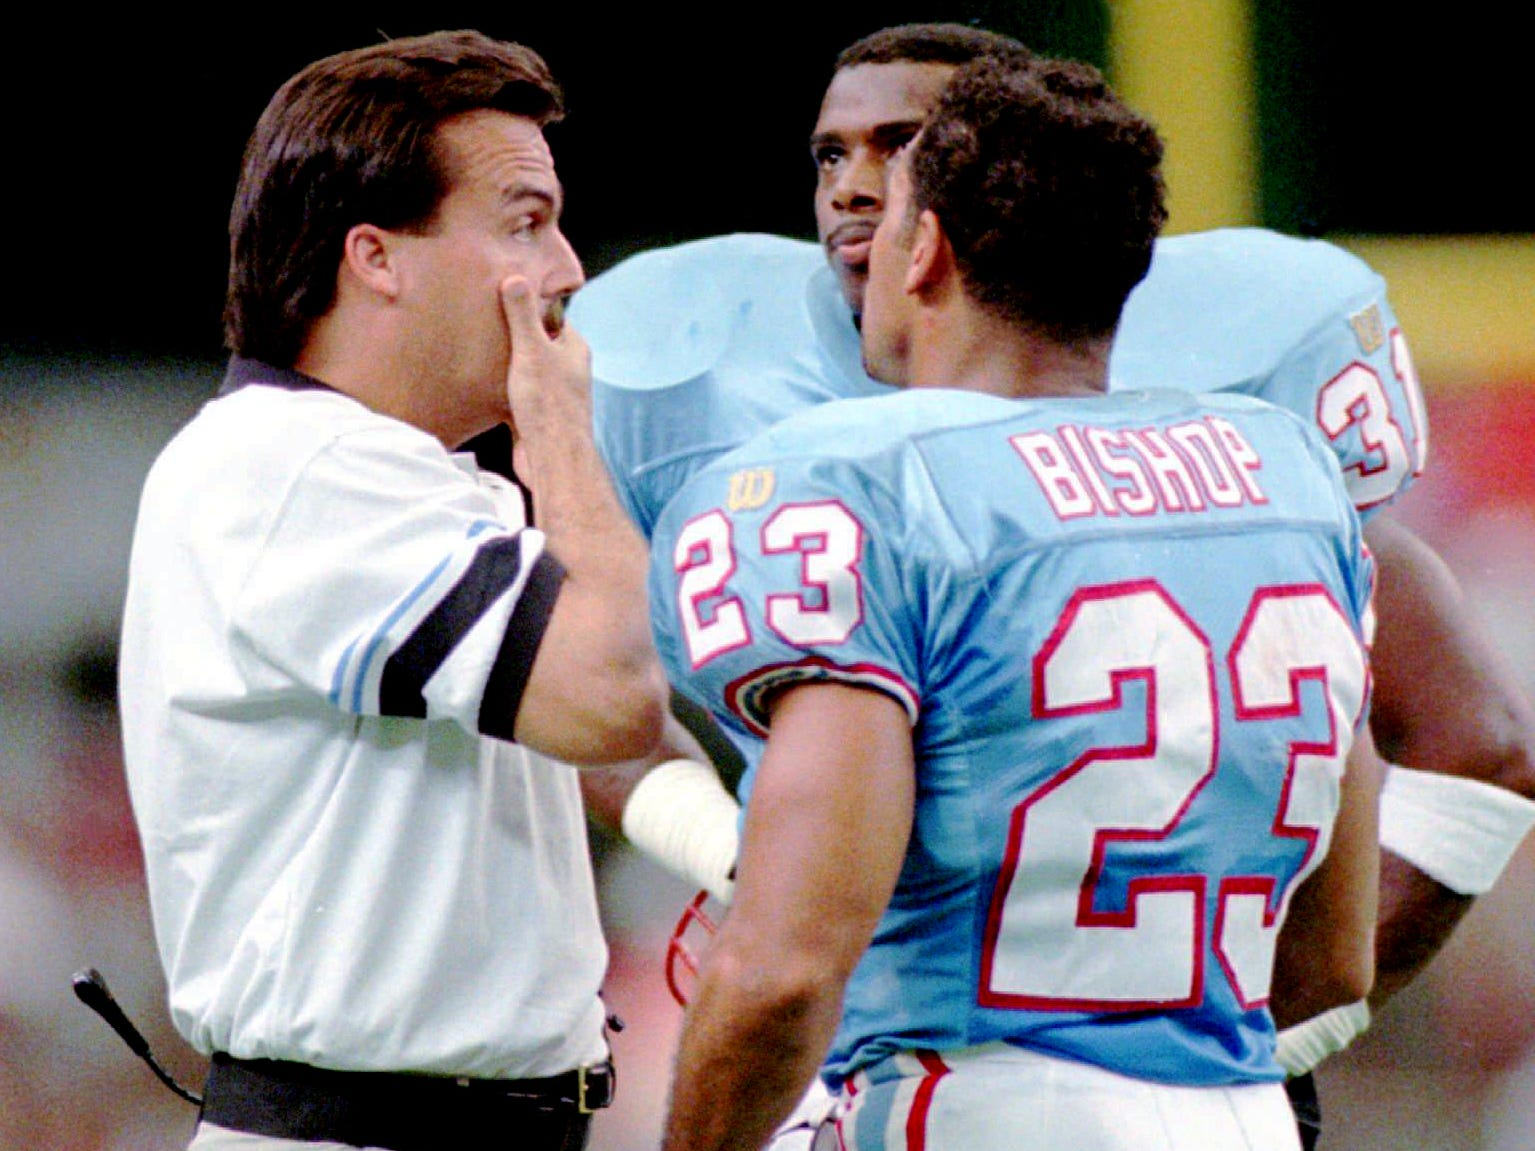 Houston Oilers coach Jeff Fisher, left, talks to Marcus Robertson, center, and Blaine Bishop on the sidelines during the game Sept. 1, 1996 in Houston. The Oilers lost 20-19 to the Kansas City Chiefs.